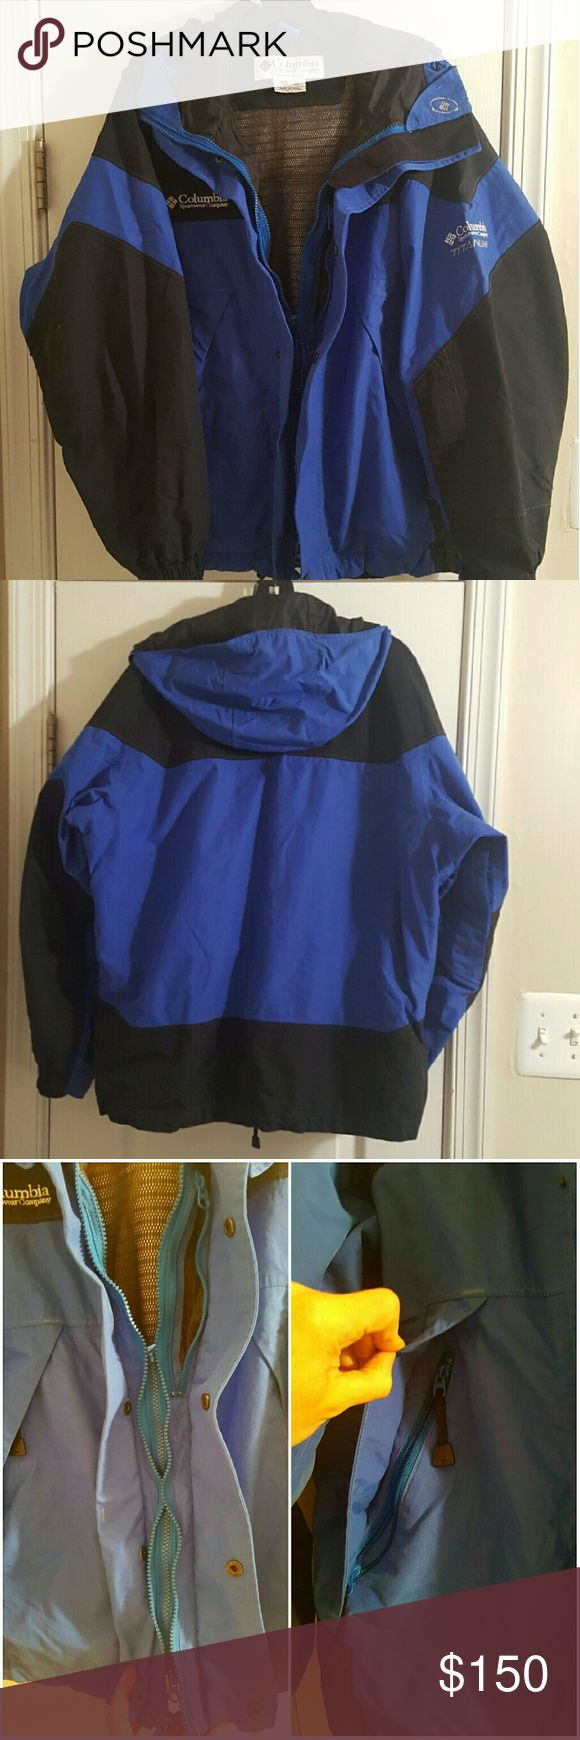 Men's Columbia titanium jacket In like-new condition  Double zipper, button front. Multiple pockets (as pictured)  These jackets sell for $280 on Columbia's site ***Remember when making an offer that posh takes a little over 20% of my final sale price*** Columbia Jackets & Coats Ski & Snowboard